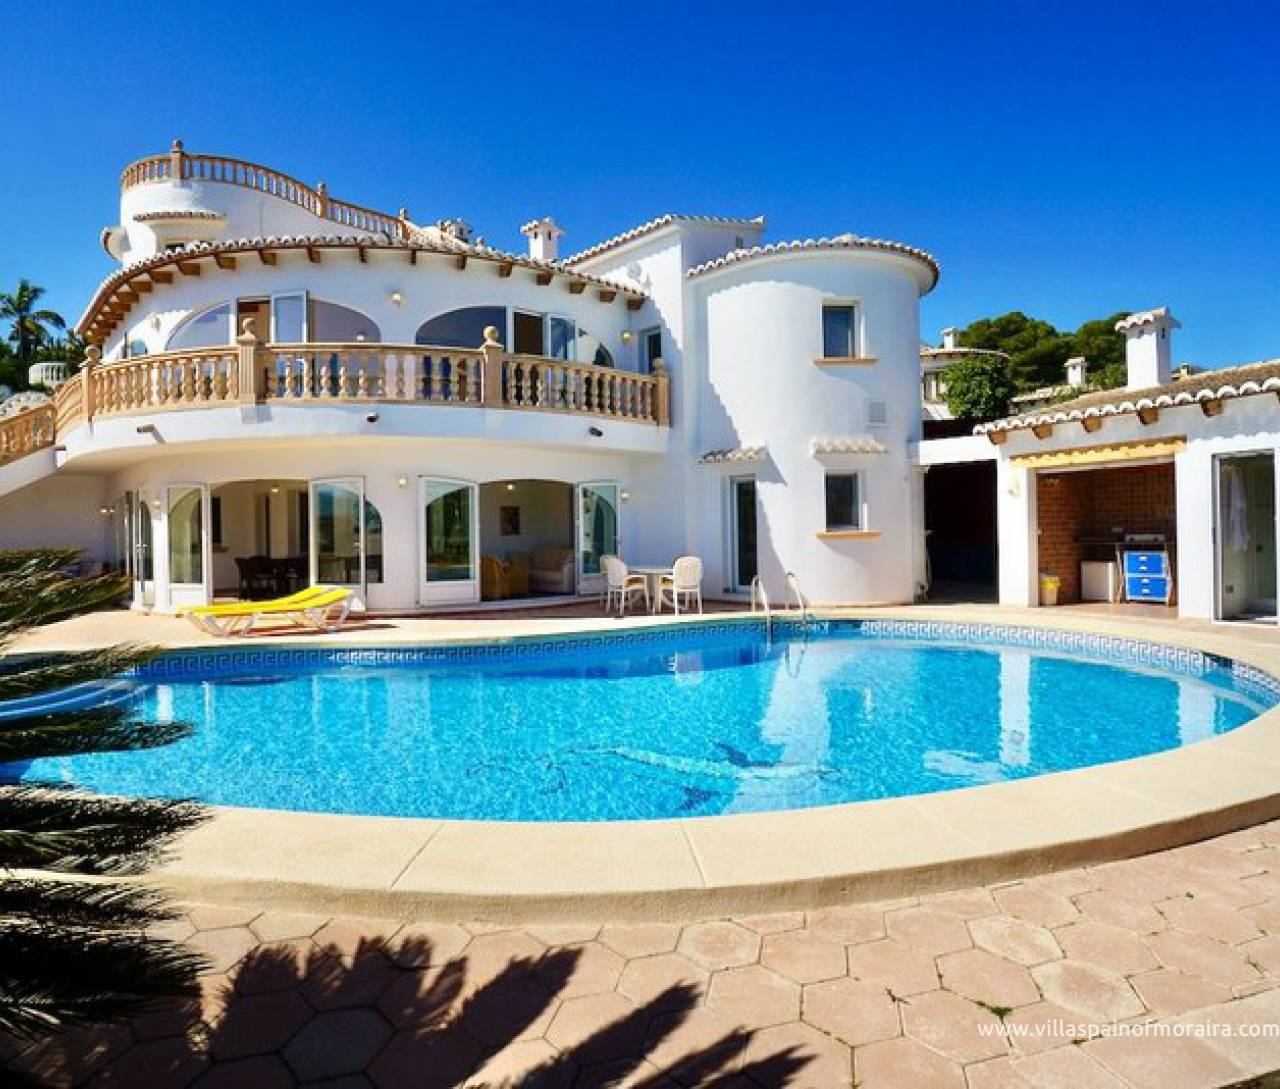 Villa for sale El Bosque Moraira